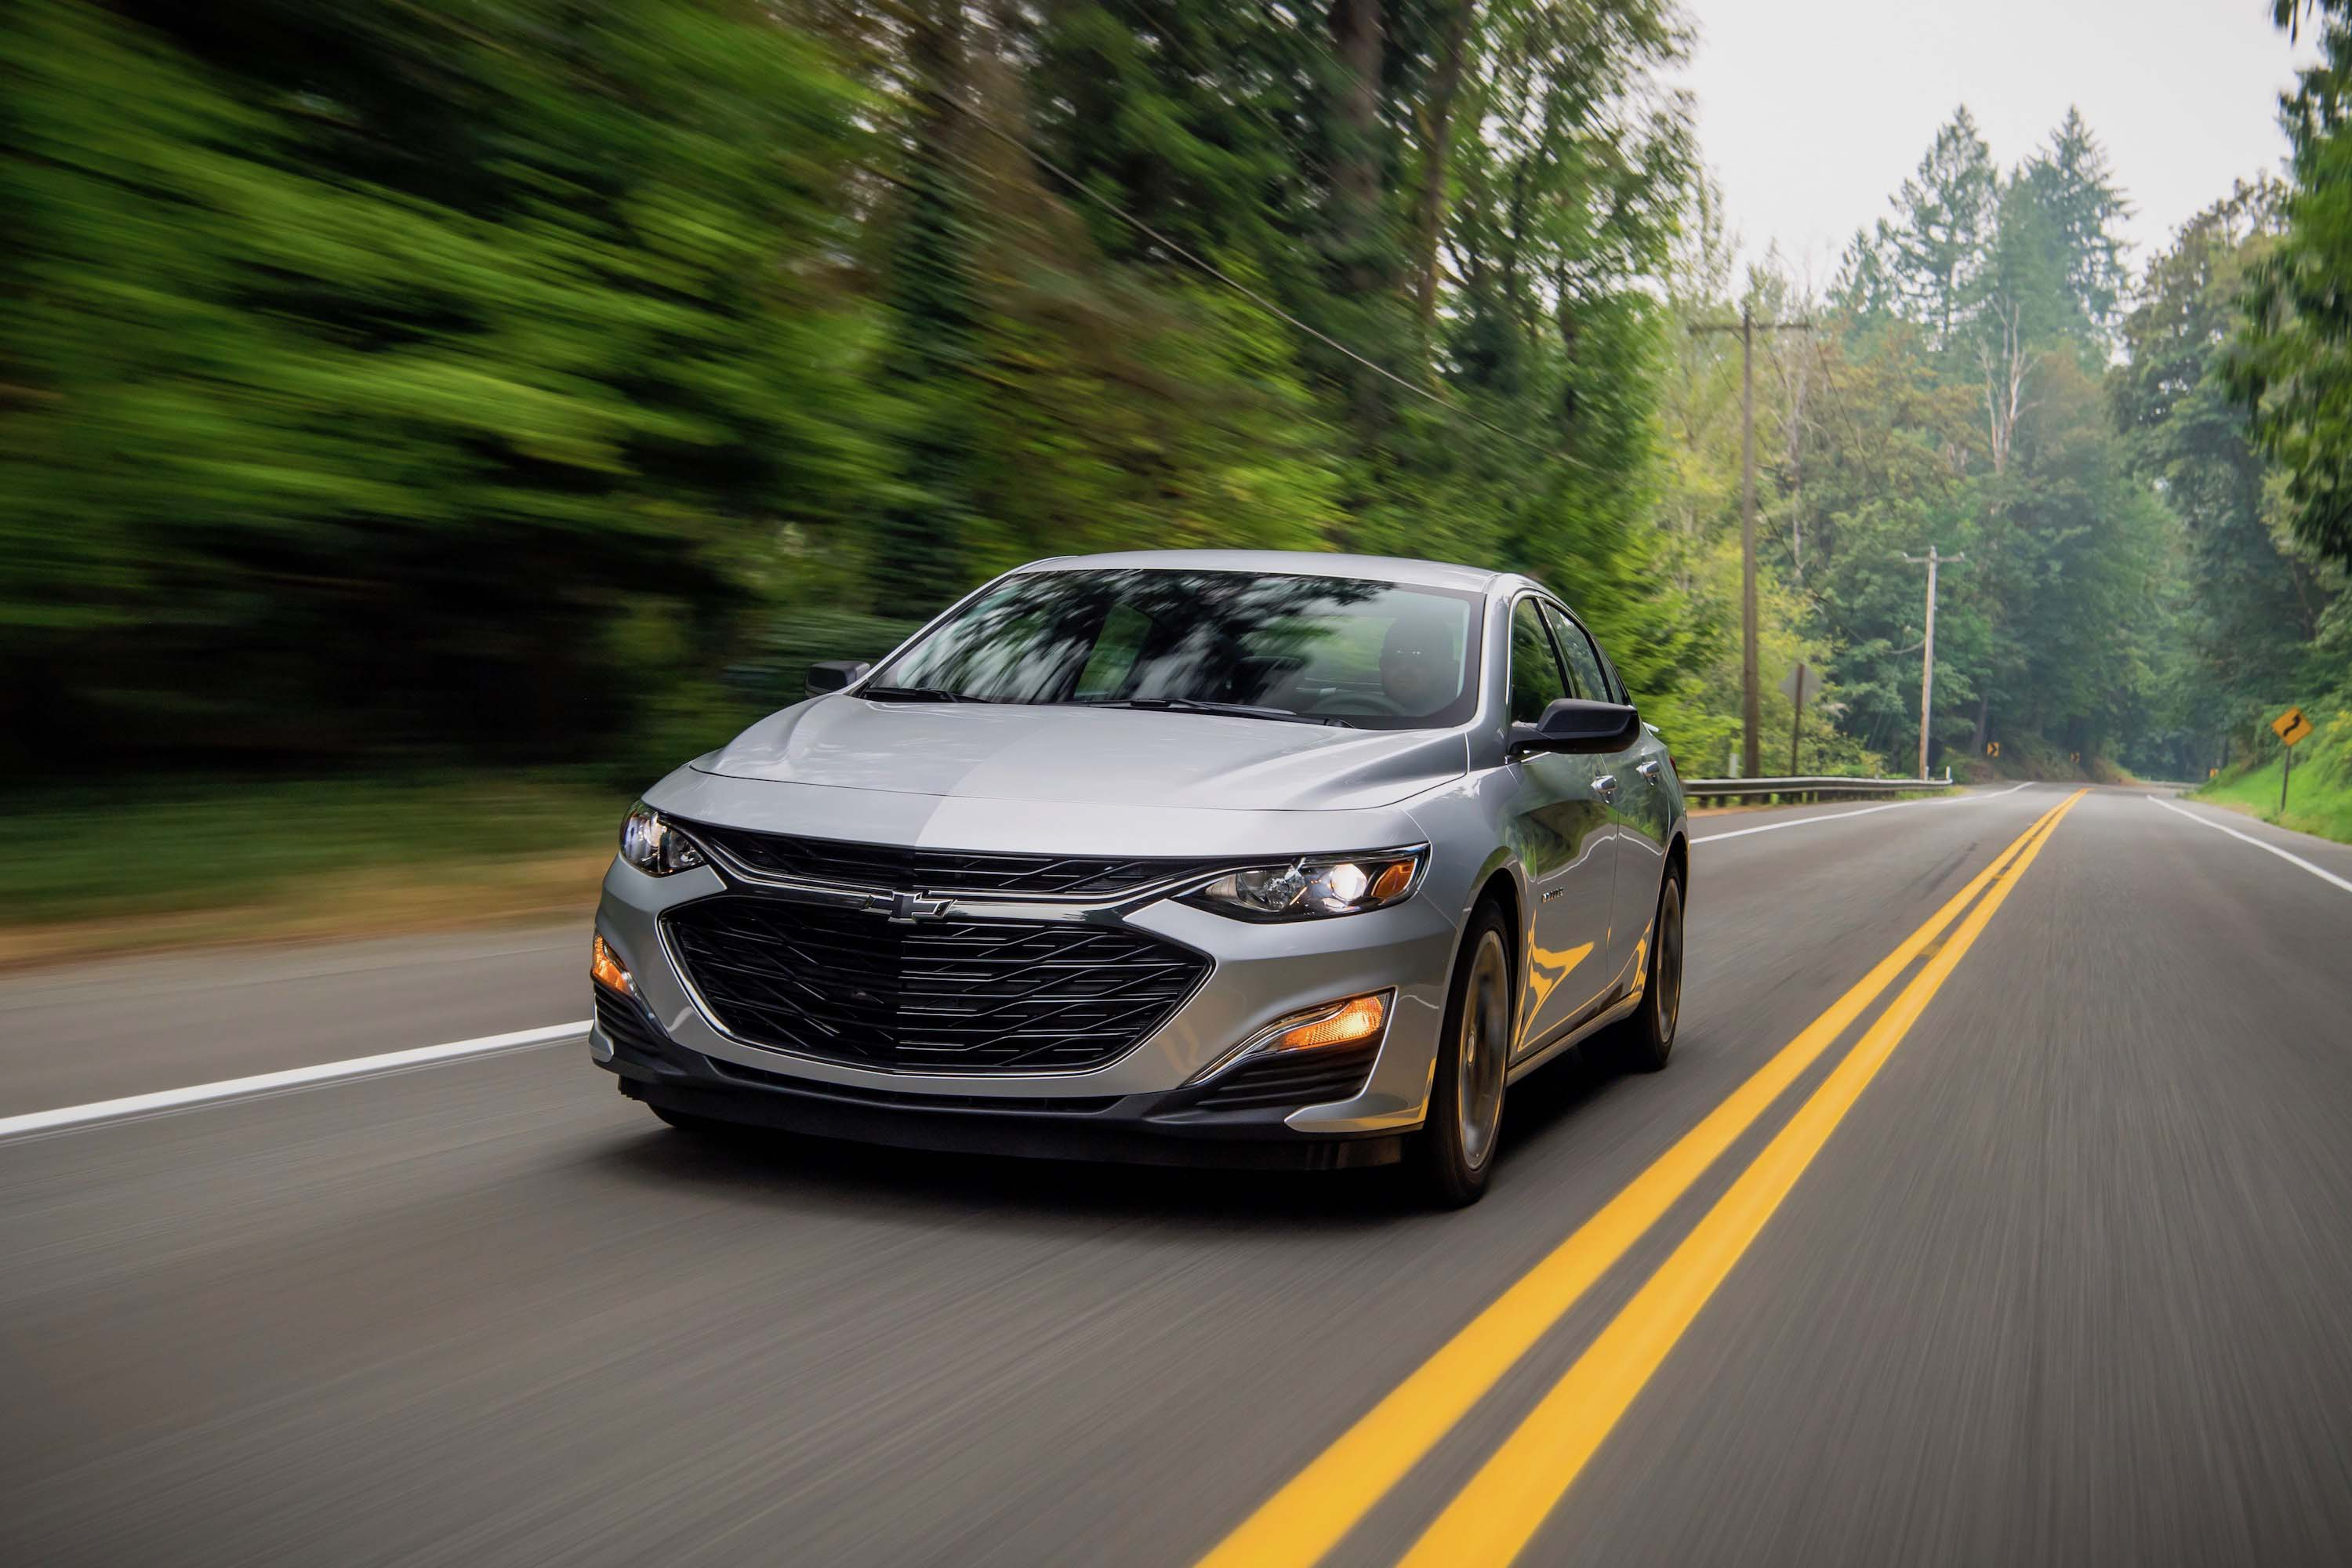 2019 Chevrolet Malibu first drive: Mid-size sedan let down ...